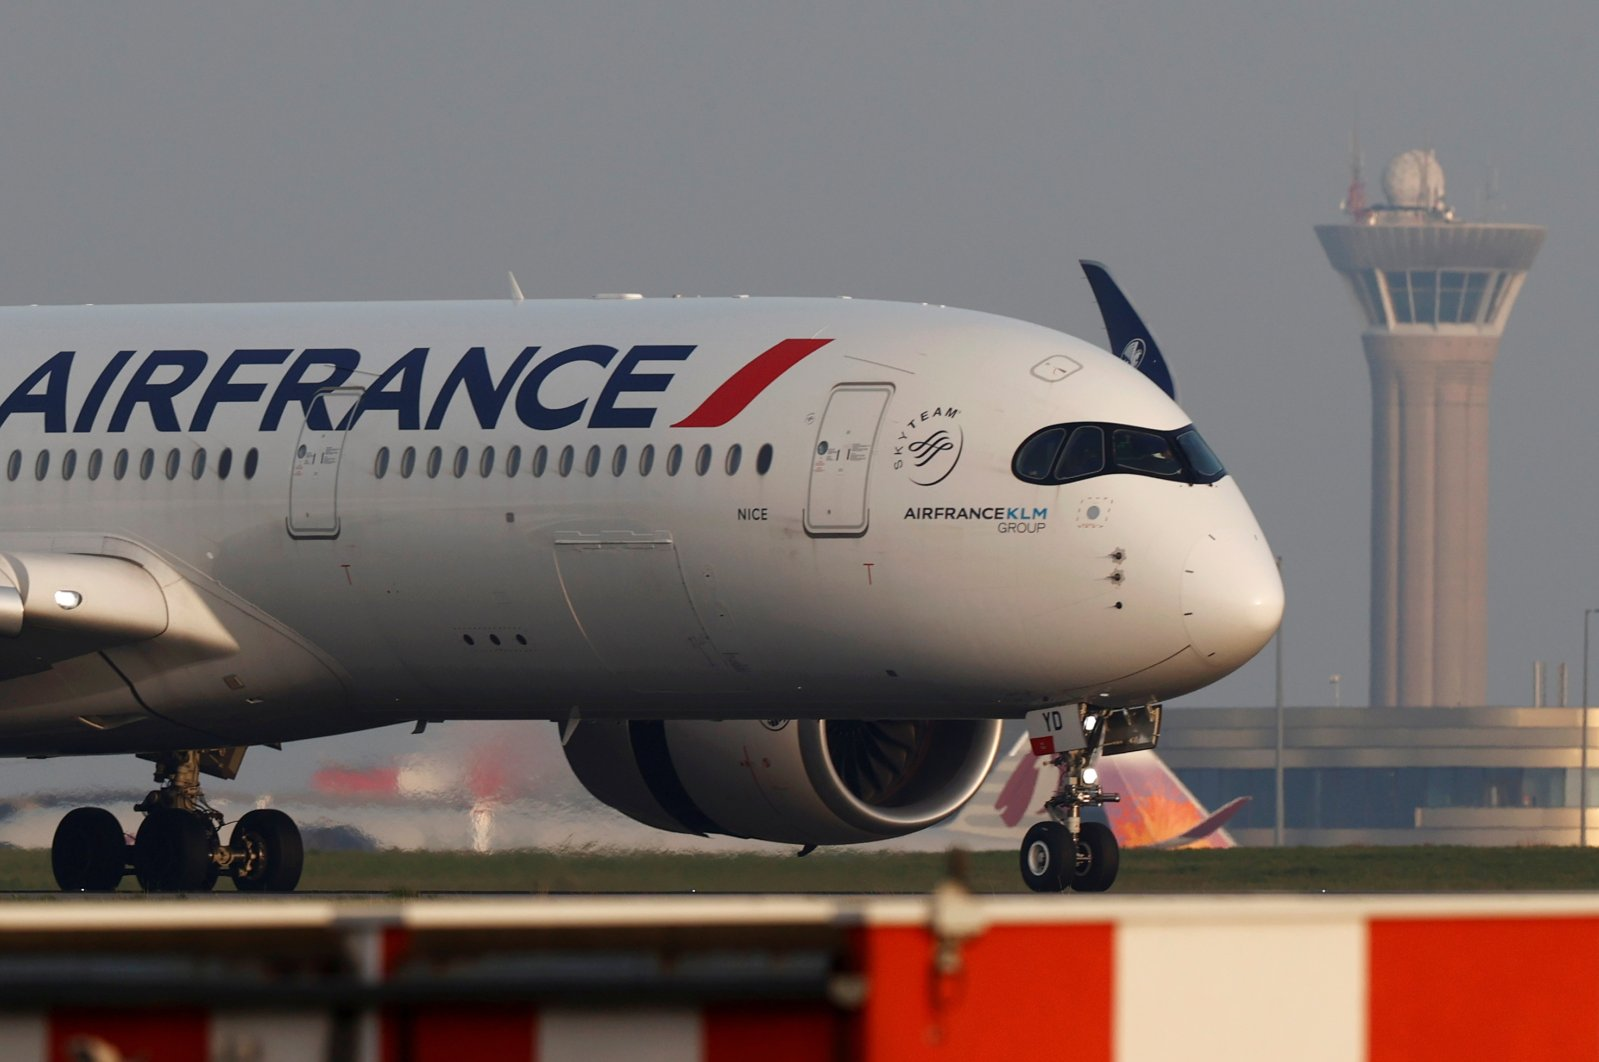 An Air France Airbus A350 airplane lands at the Charles-de-Gaulle airport in Roissy, near Paris, France, April 2, 2021. (Reuters Photo)